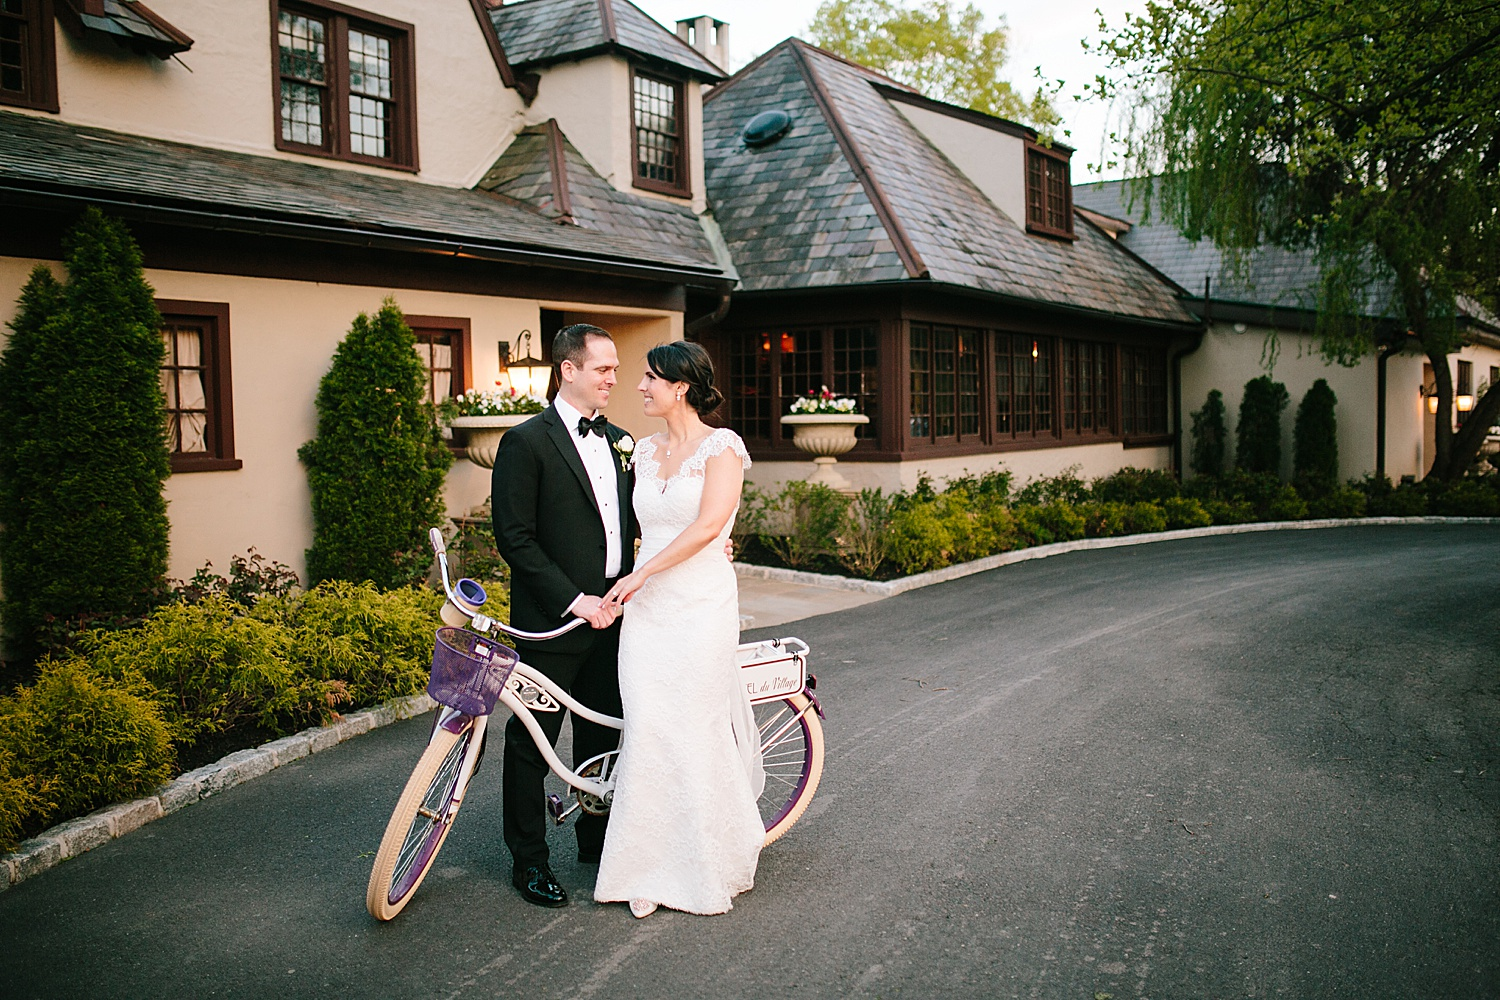 caitlingmarc_hotelduvillage_newhope_estate_spring_wedding)image089.jpg